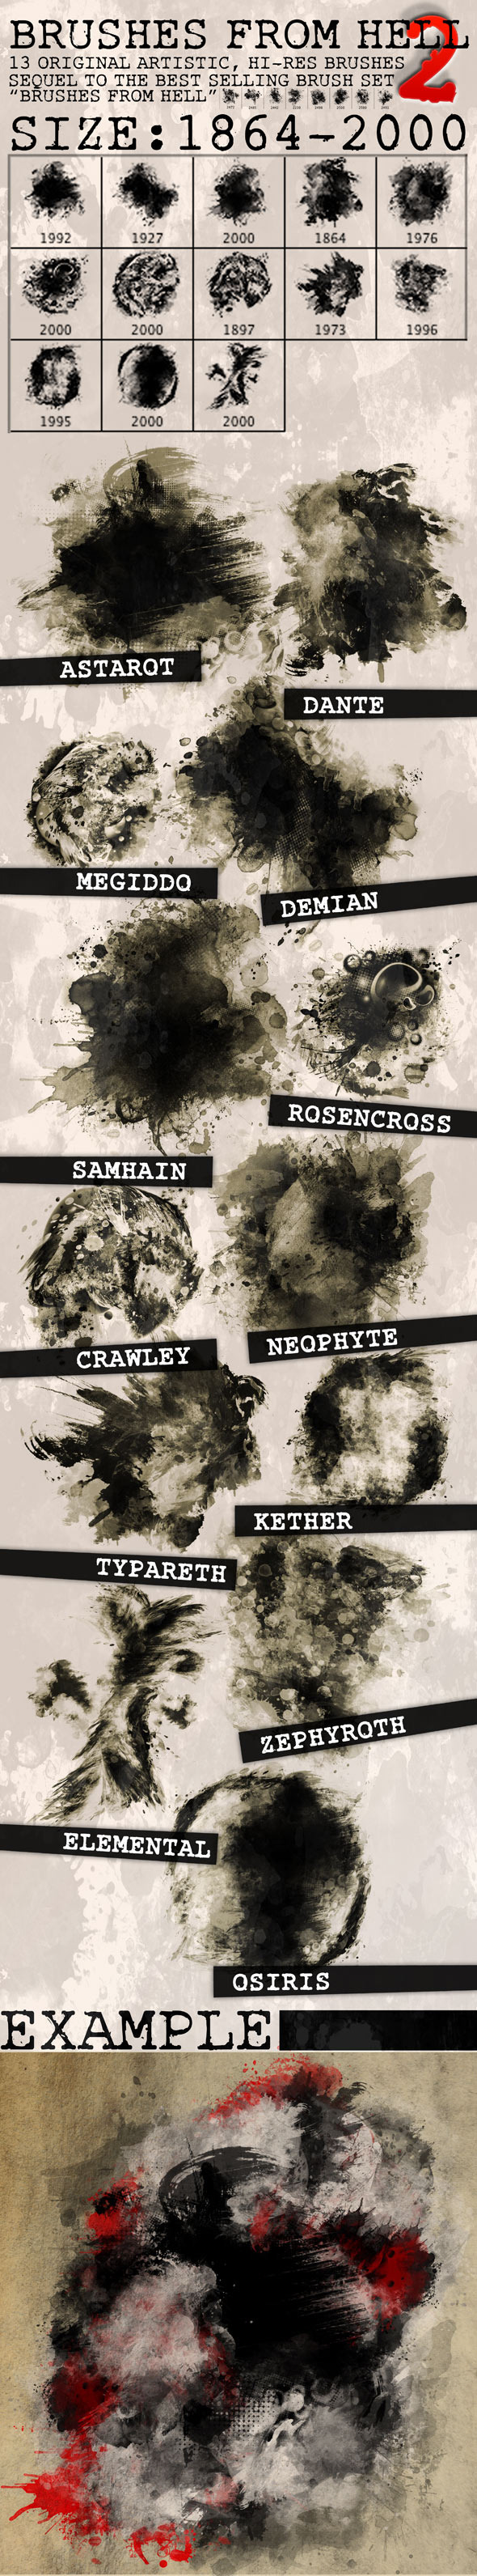 13 Hi-Res Brushes from Hell 2 - Abstract Brushes